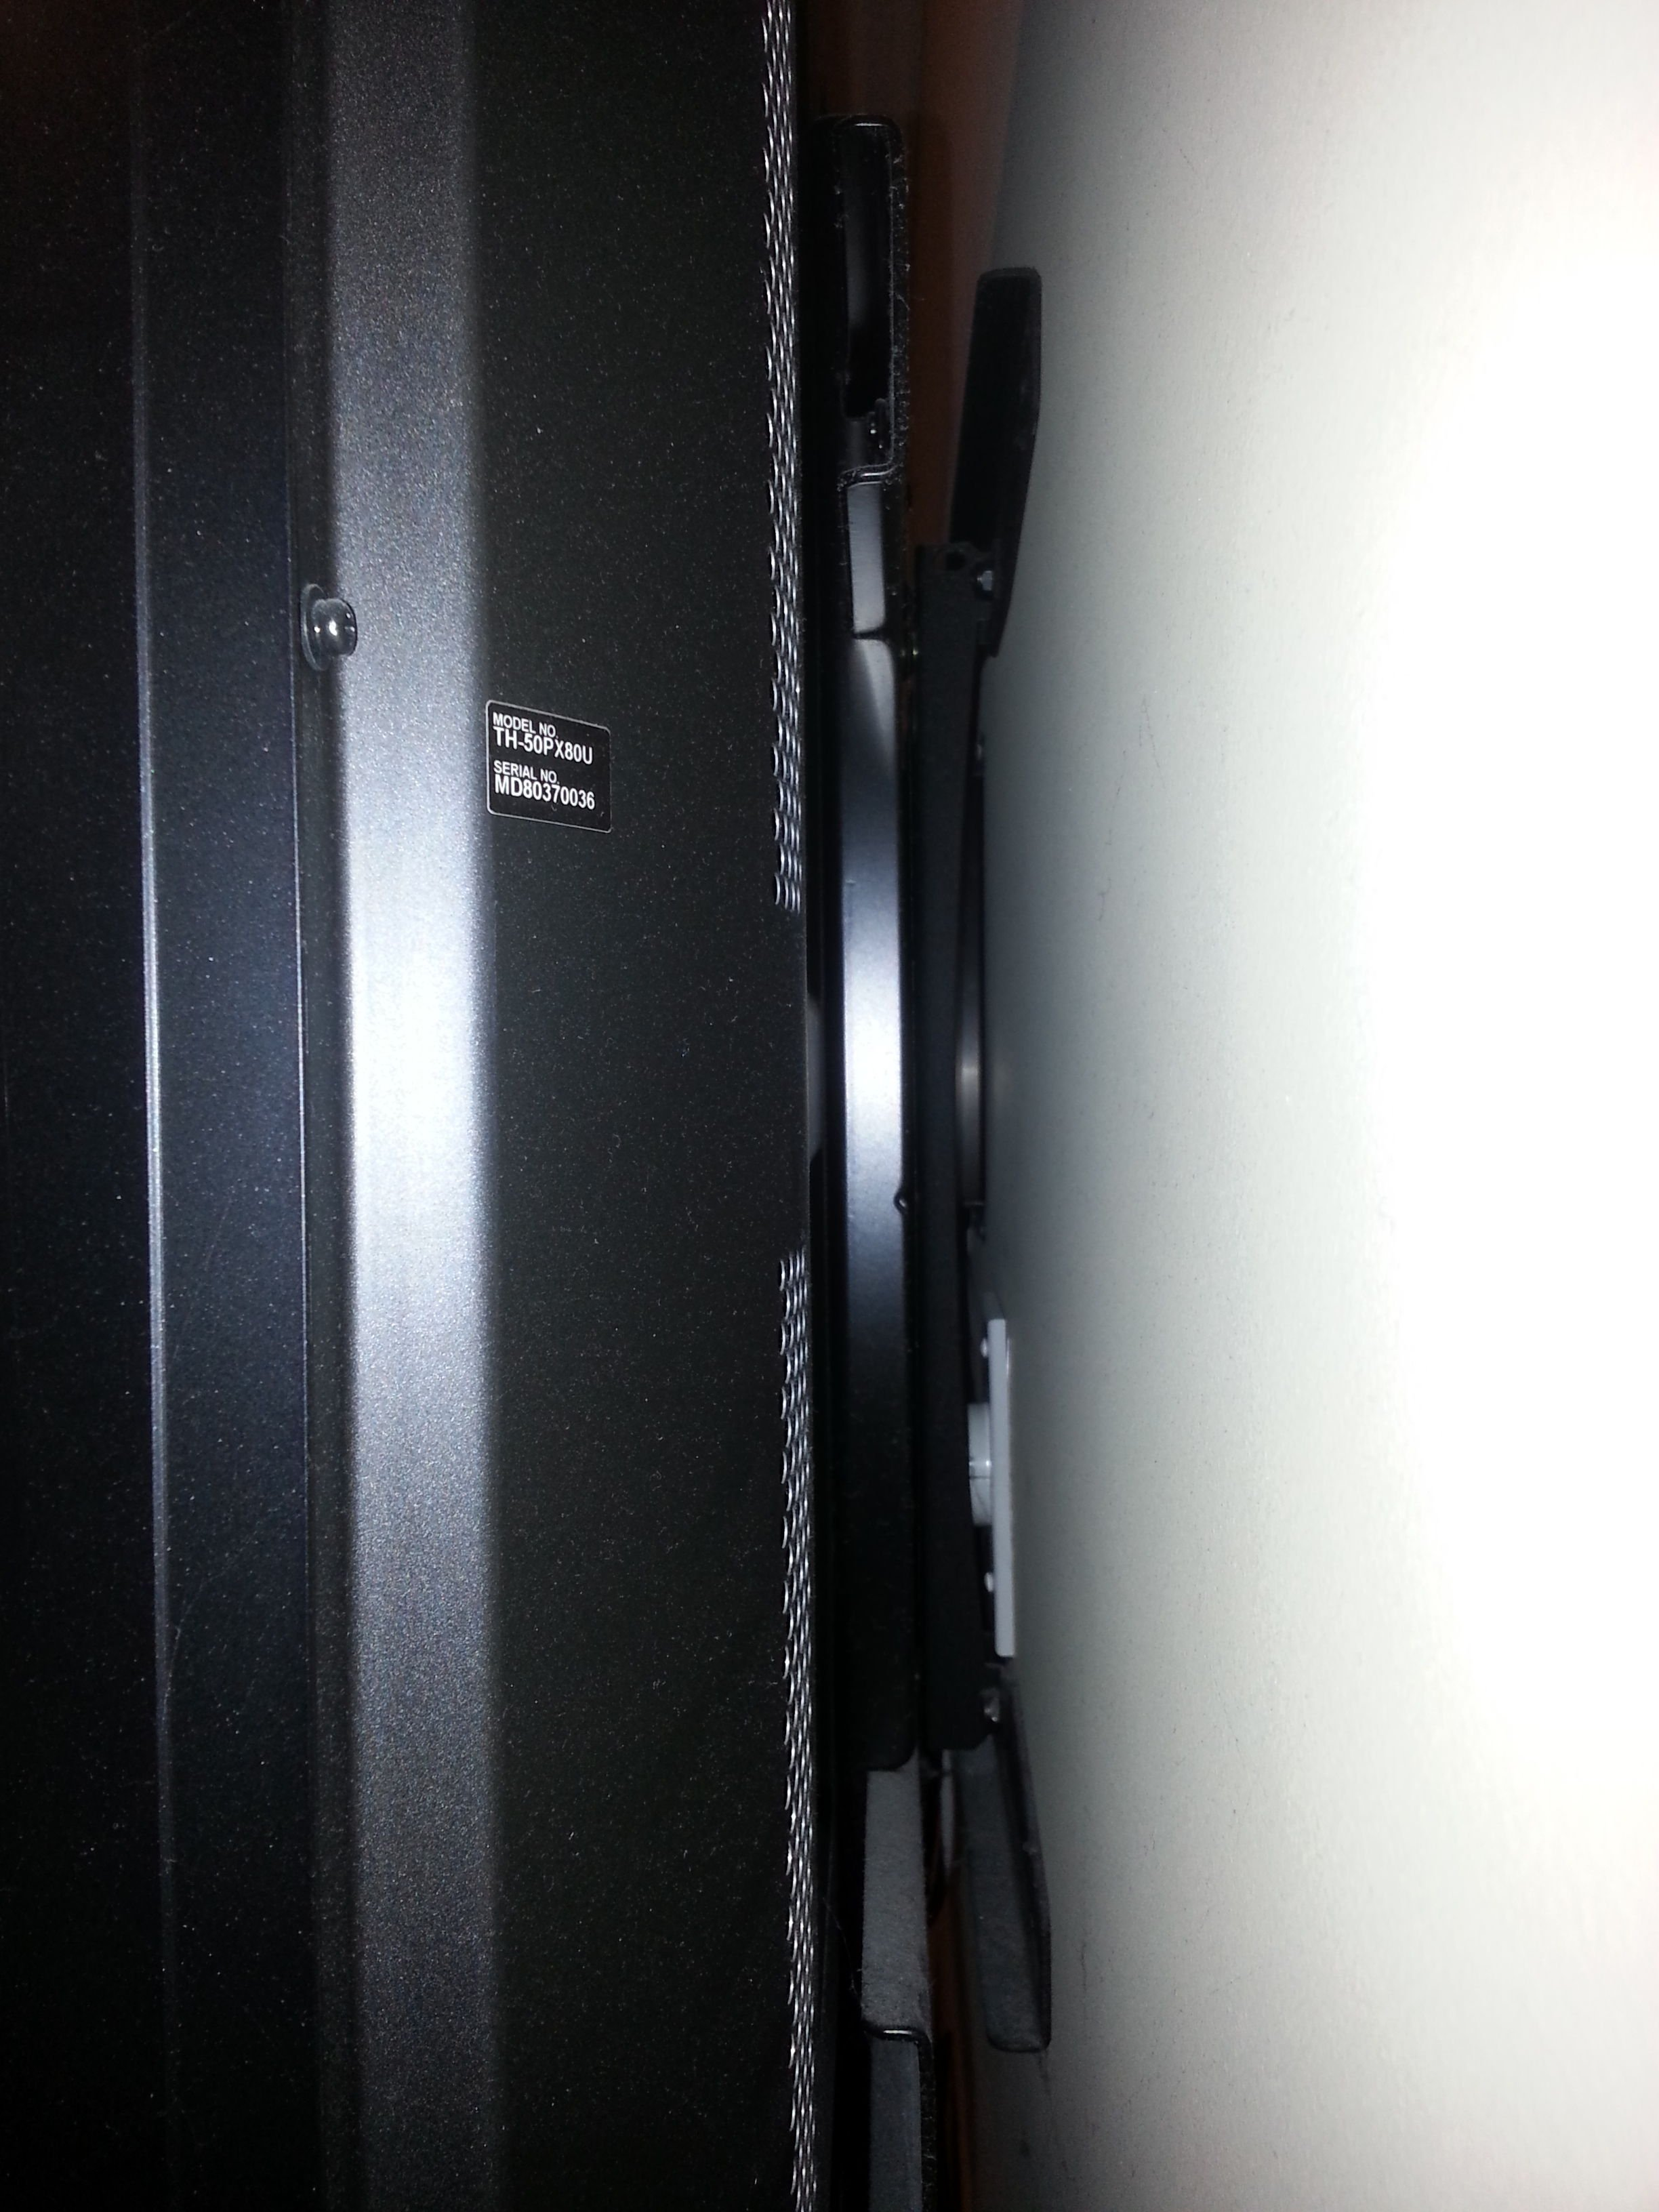 Old Wall Mount Cant Tell How To Unlock Avs Forum Home Theater